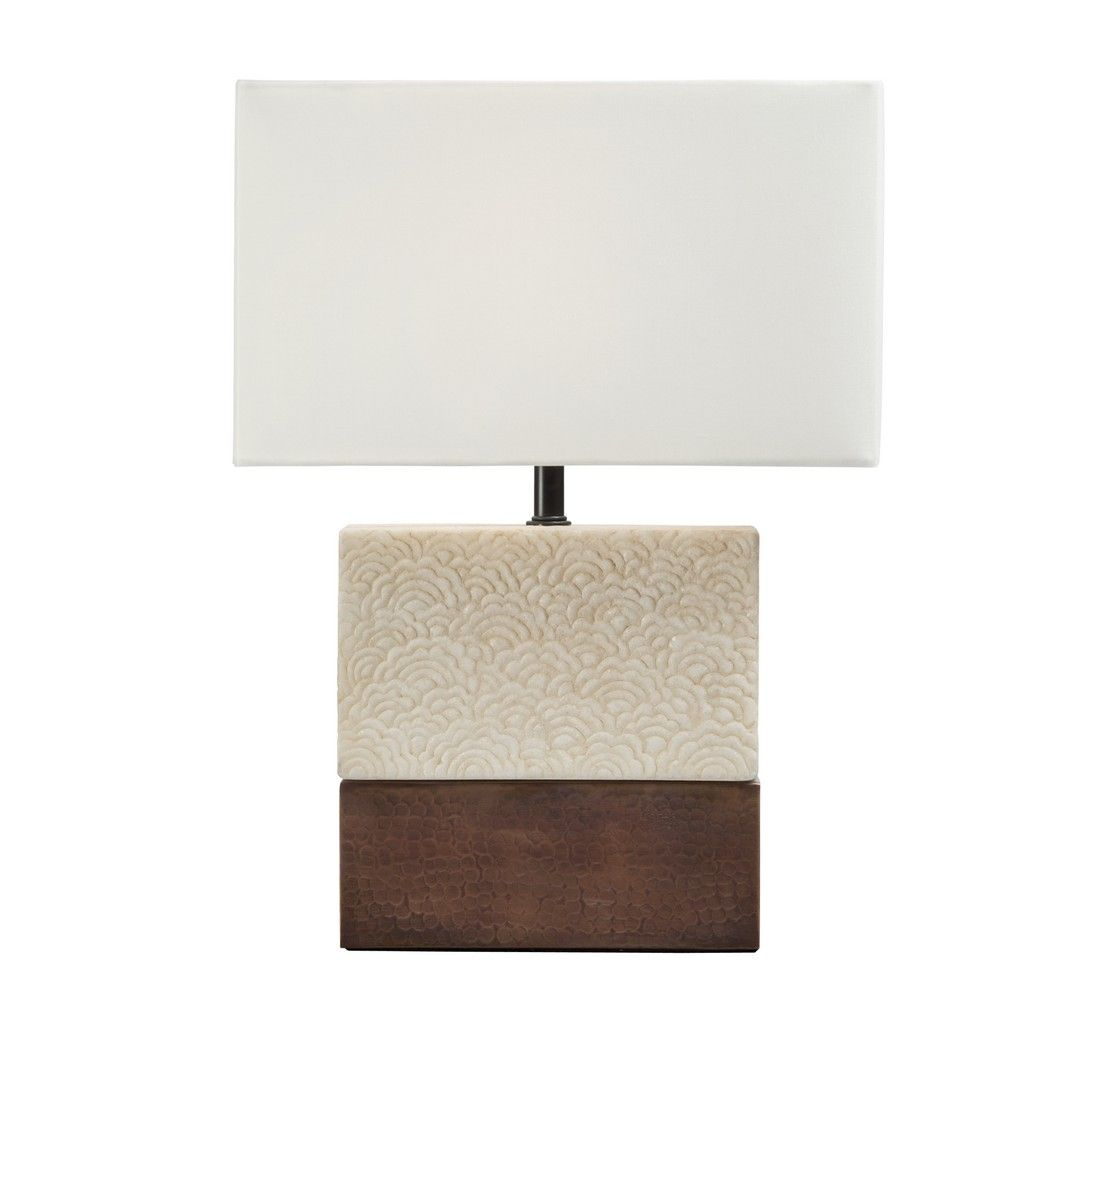 Obiect de iluminat Robert Kuo - Hua Table Lamp